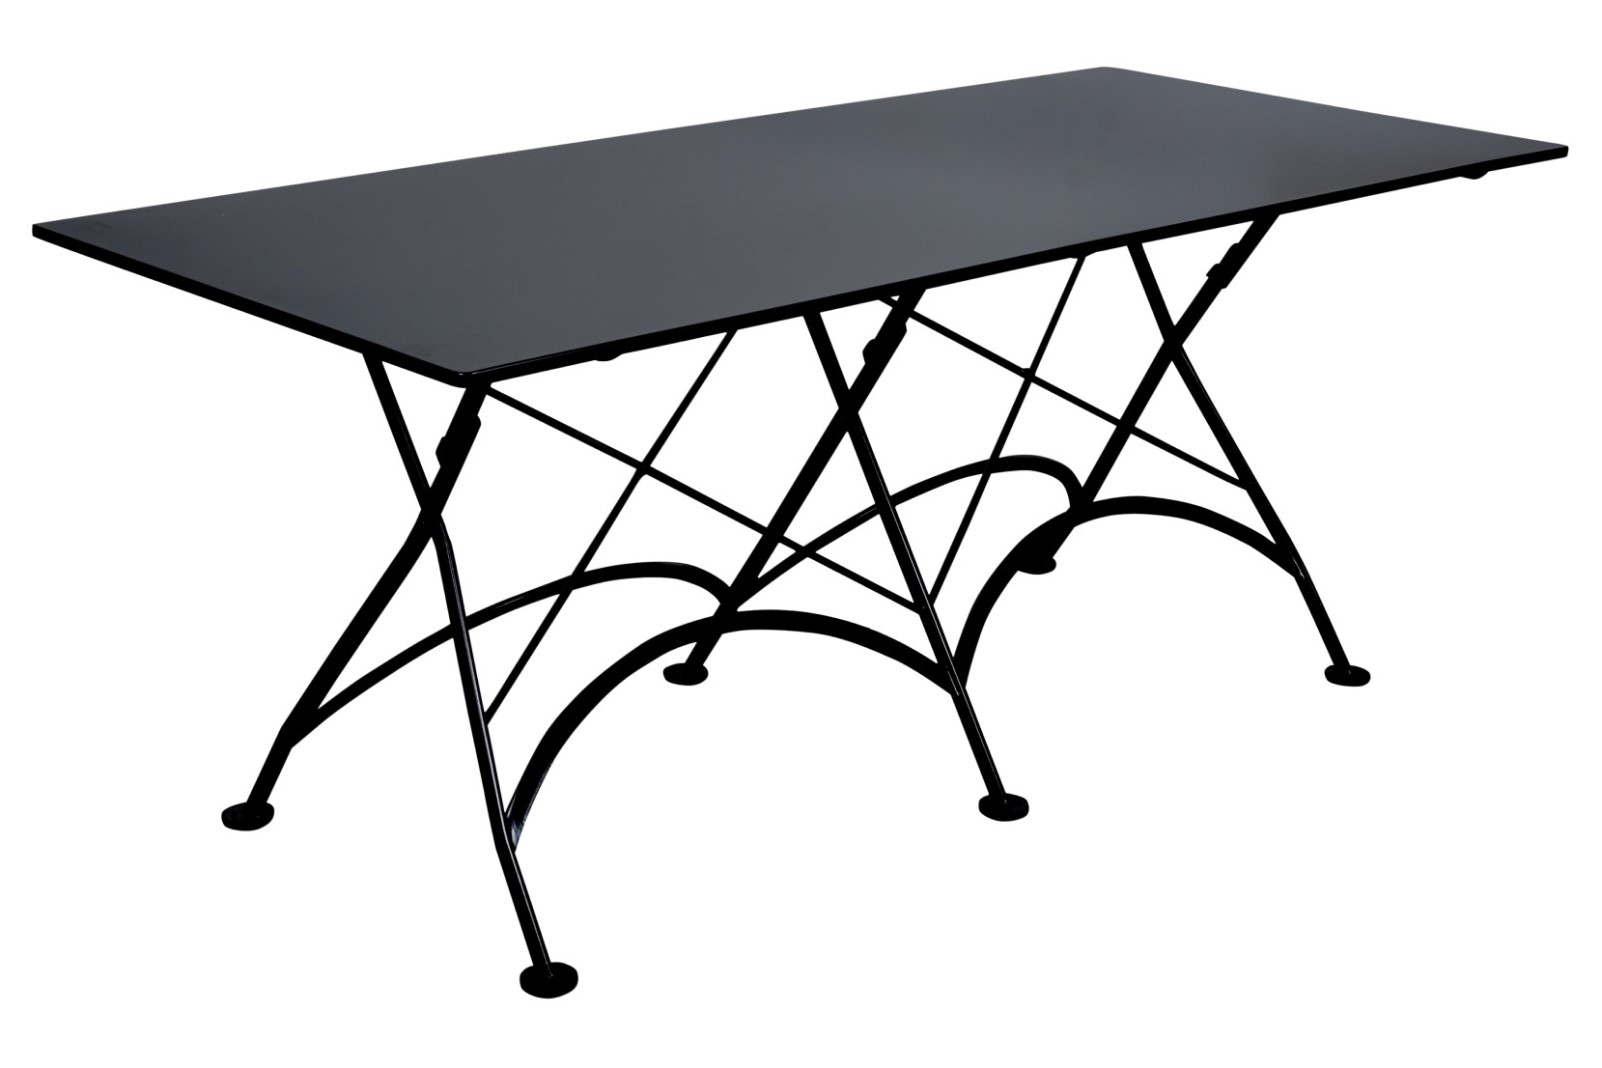 4116S-BK Metal Table 32 x 72